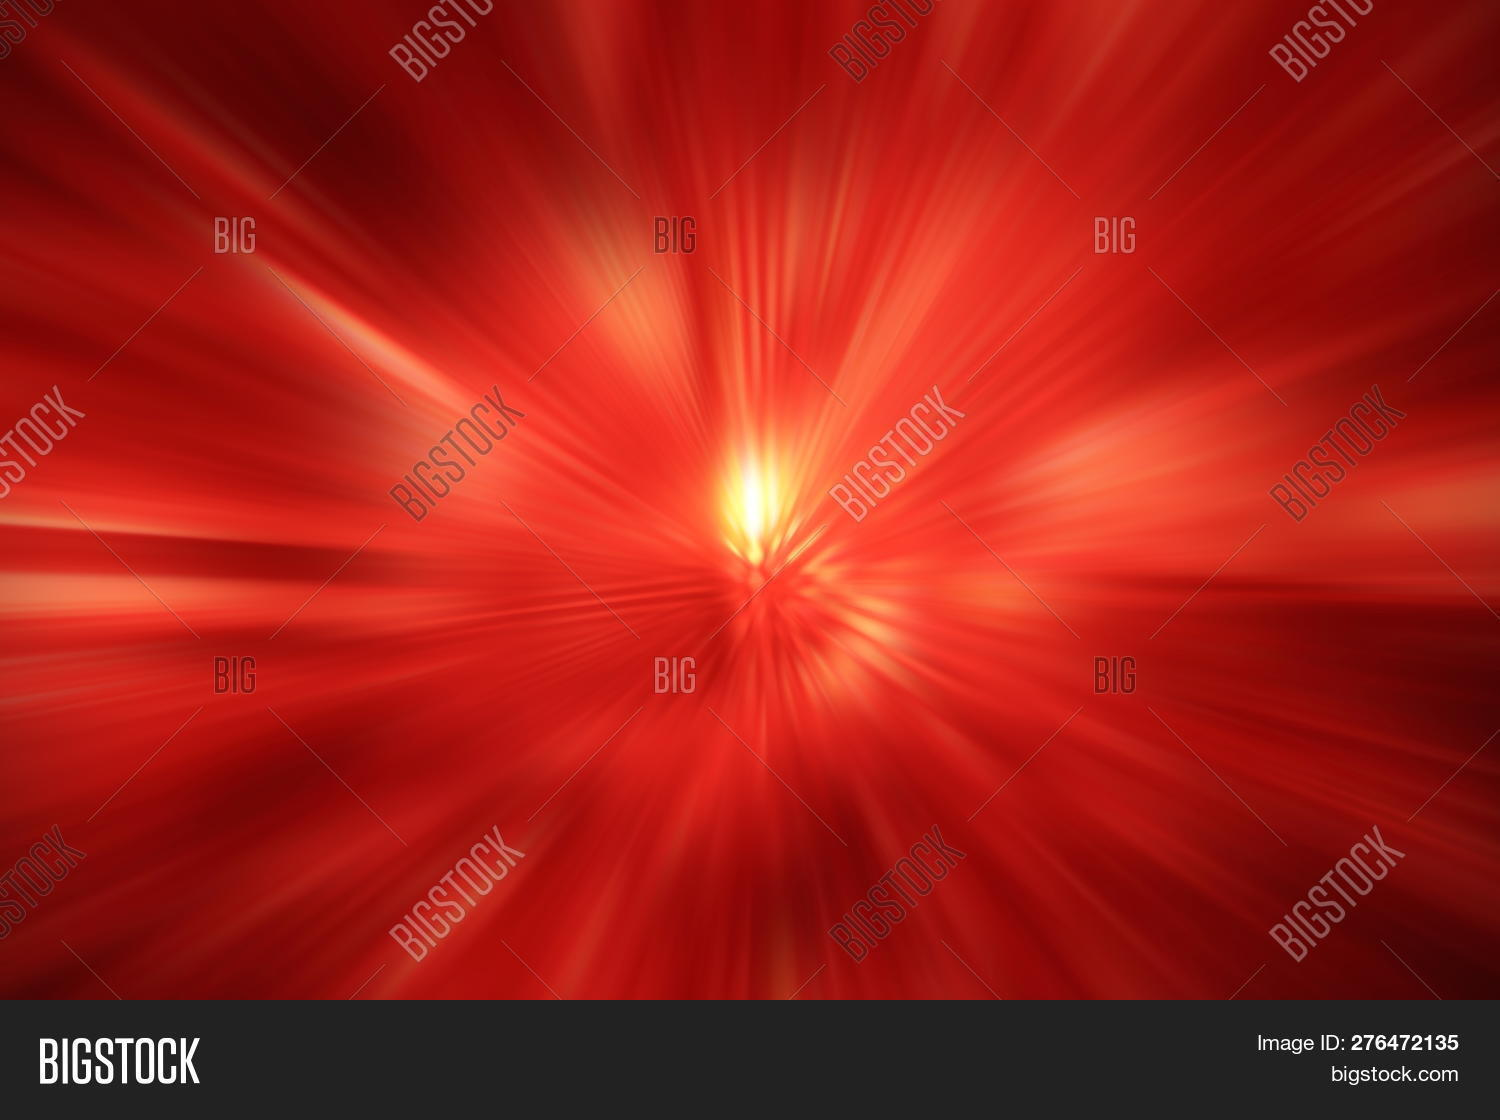 abstract,art,backdrop,background,black,blast,blur,bright,burst,color,decoration,design,dynamic,effect,energy,explosion,fantasy,fast,flare,flash,glow,glowing,graphic,happy,holiday,illustration,light,line,modern,motion,movement,pattern,radial,rays,red,rush,shine,shiny,sky,space,speed,star,sunburst,technology,texture,wallpaper,white,zoom